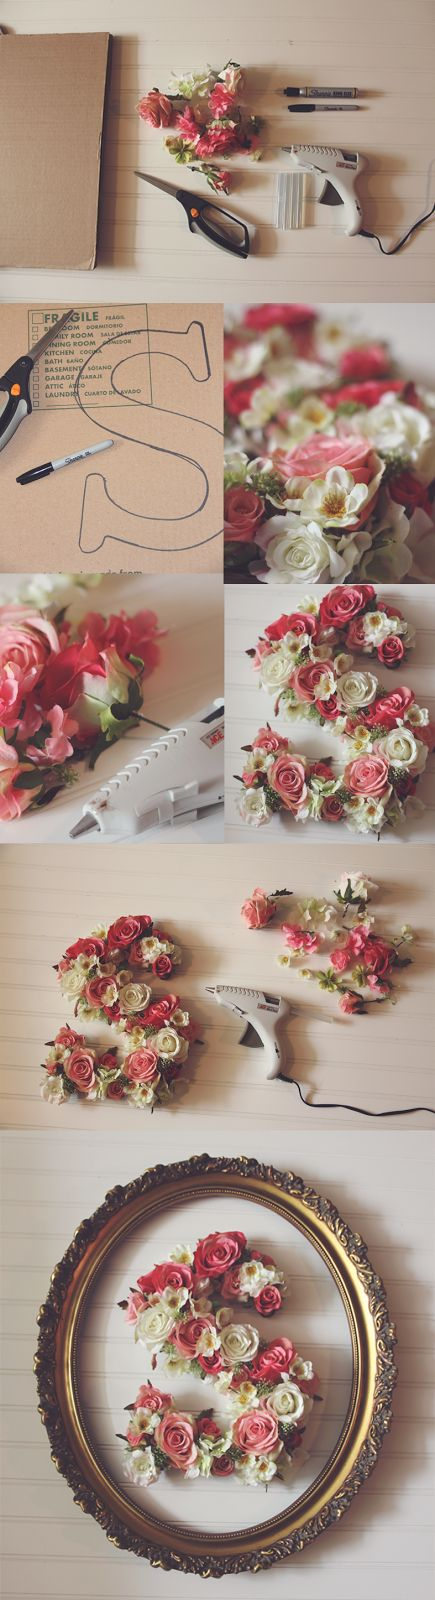 DIY Flower Monogram | Perfect wedding monogram idea!